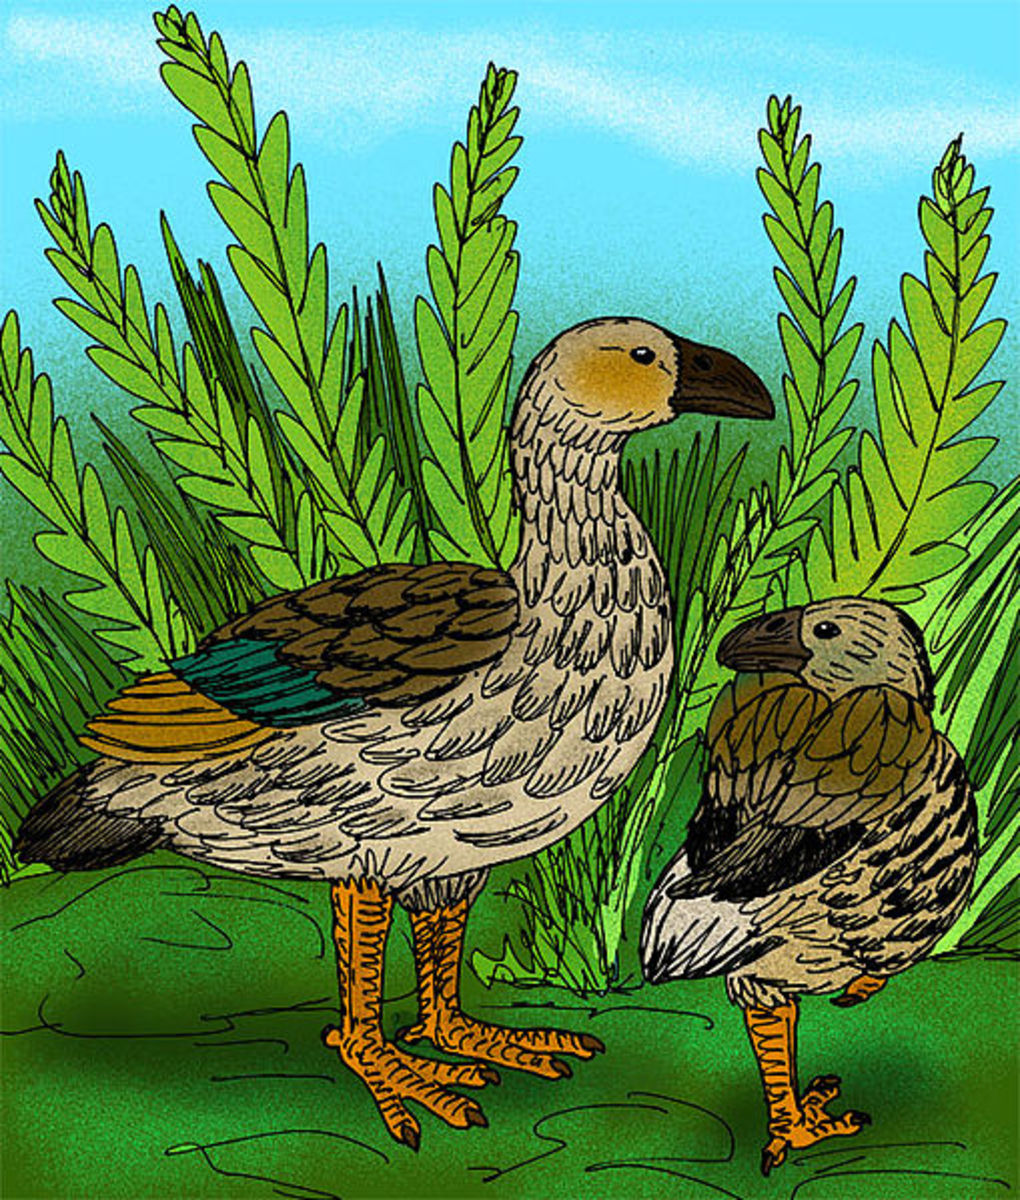 An artistic reconstruction of the Moa Nalo- the largest goose to have lived on the islands, and another descendant of the stranded Canada geese.